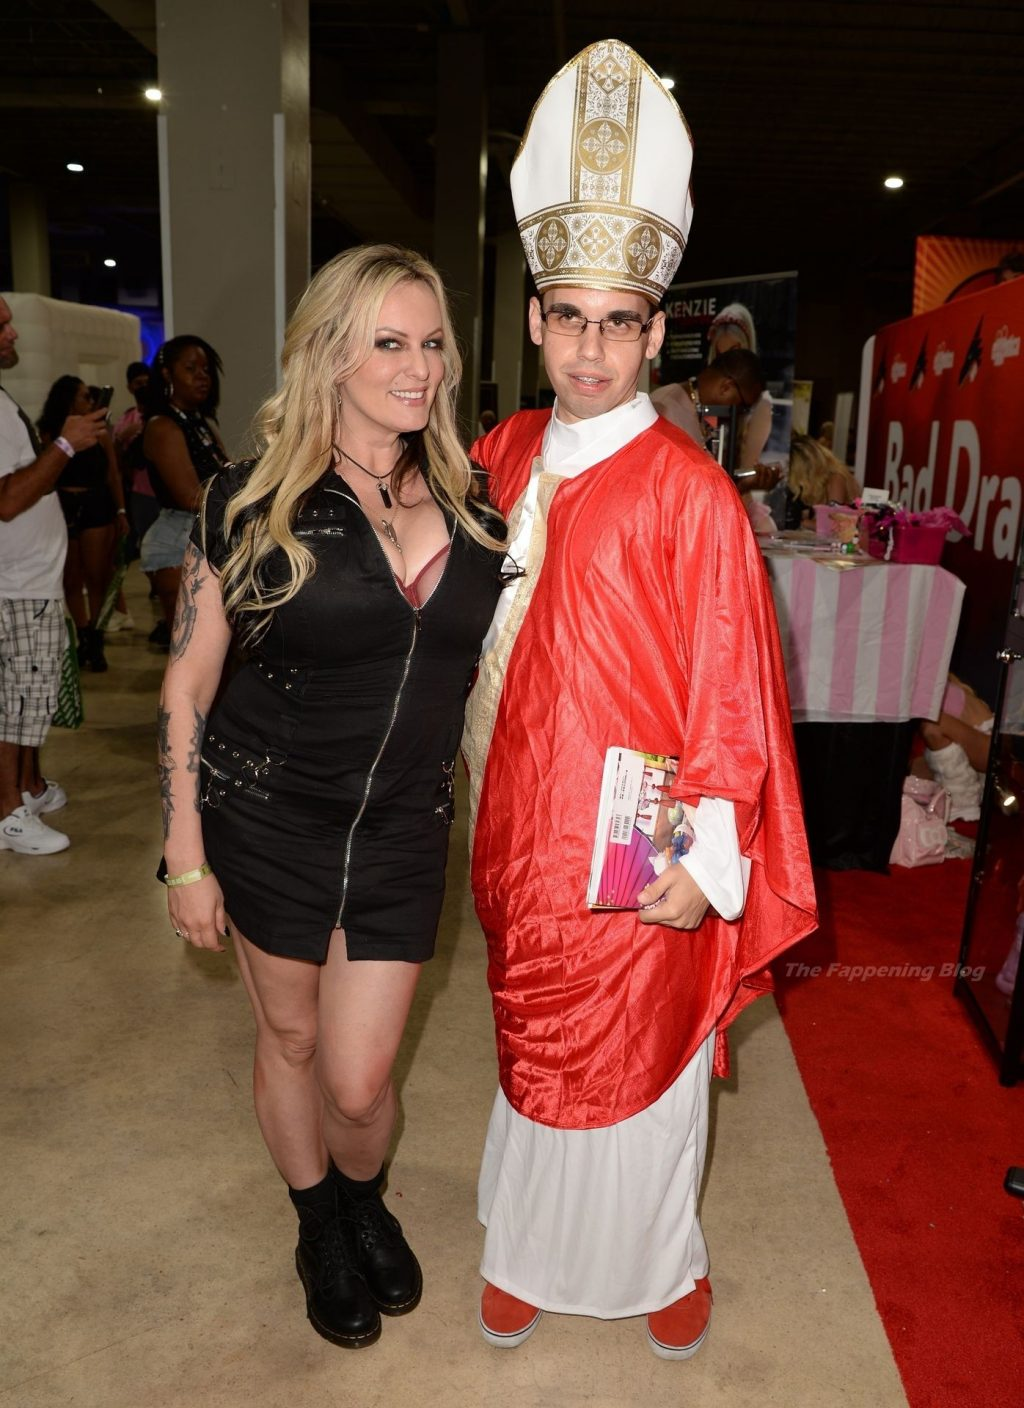 Adult Film Stars Attend the Exxxotica Expo in Miami (55 Photos)